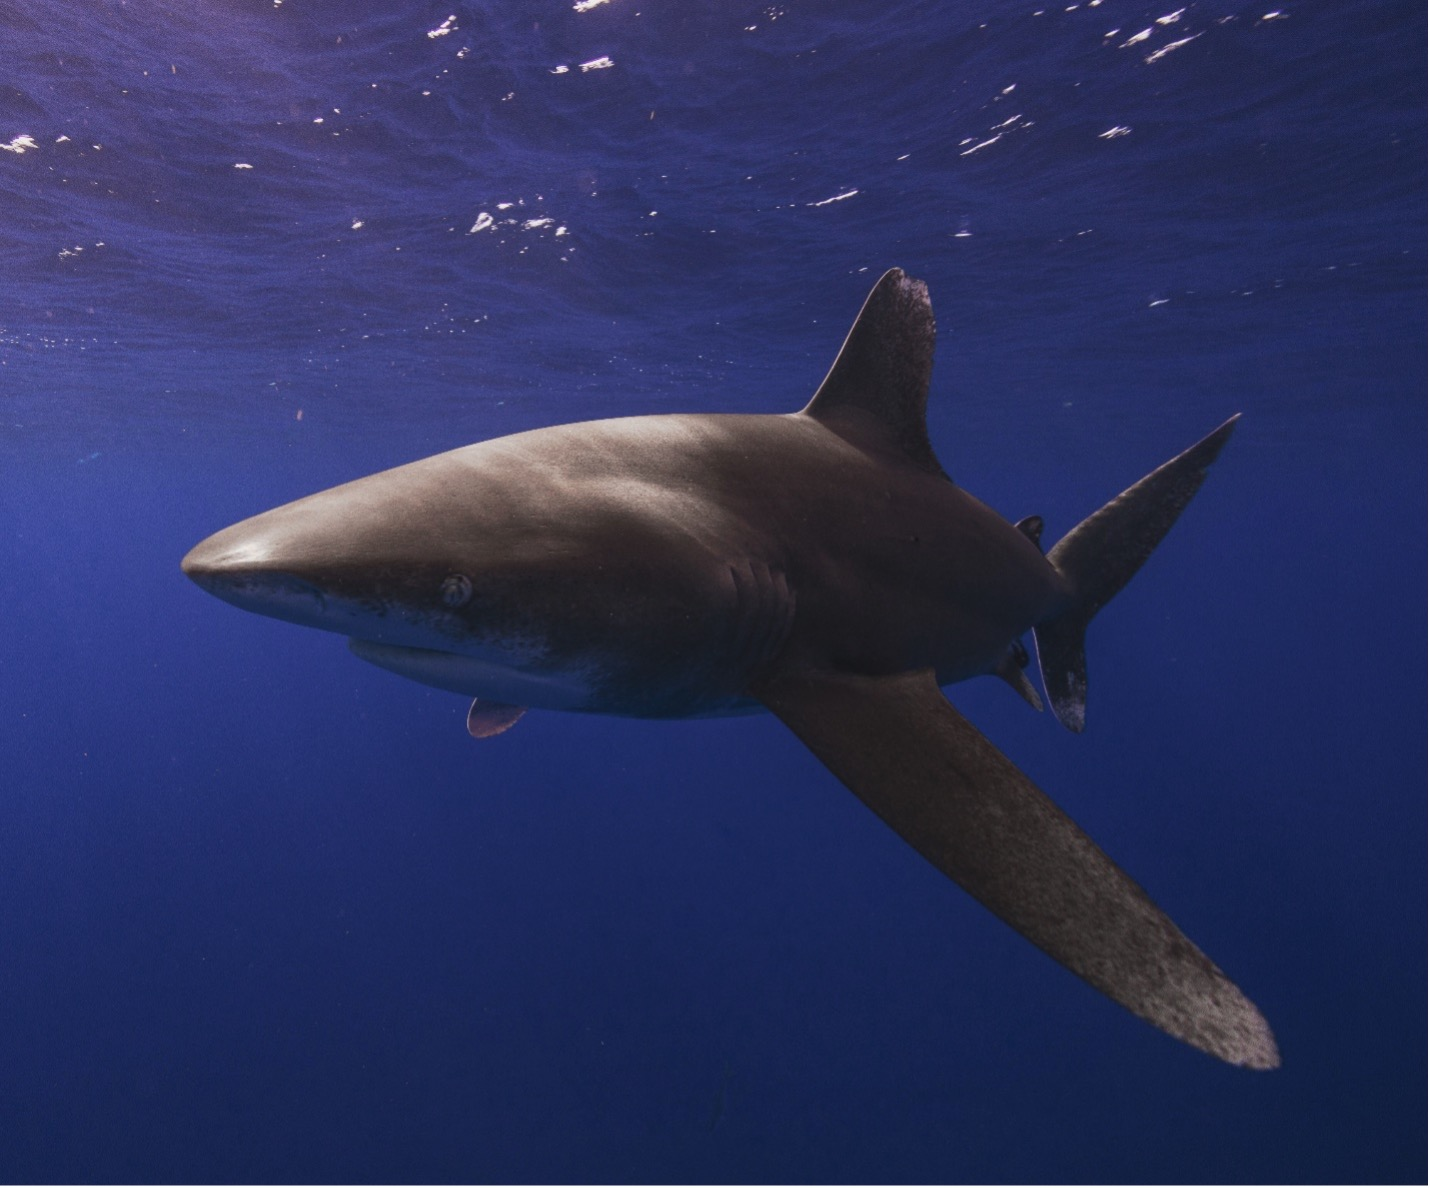 Oceanic Whitetip Shark (Carcharhinus longimanus). It was once one of the most abundant oceanic shark species in tropical seas worldwide but is now rare in some regions.